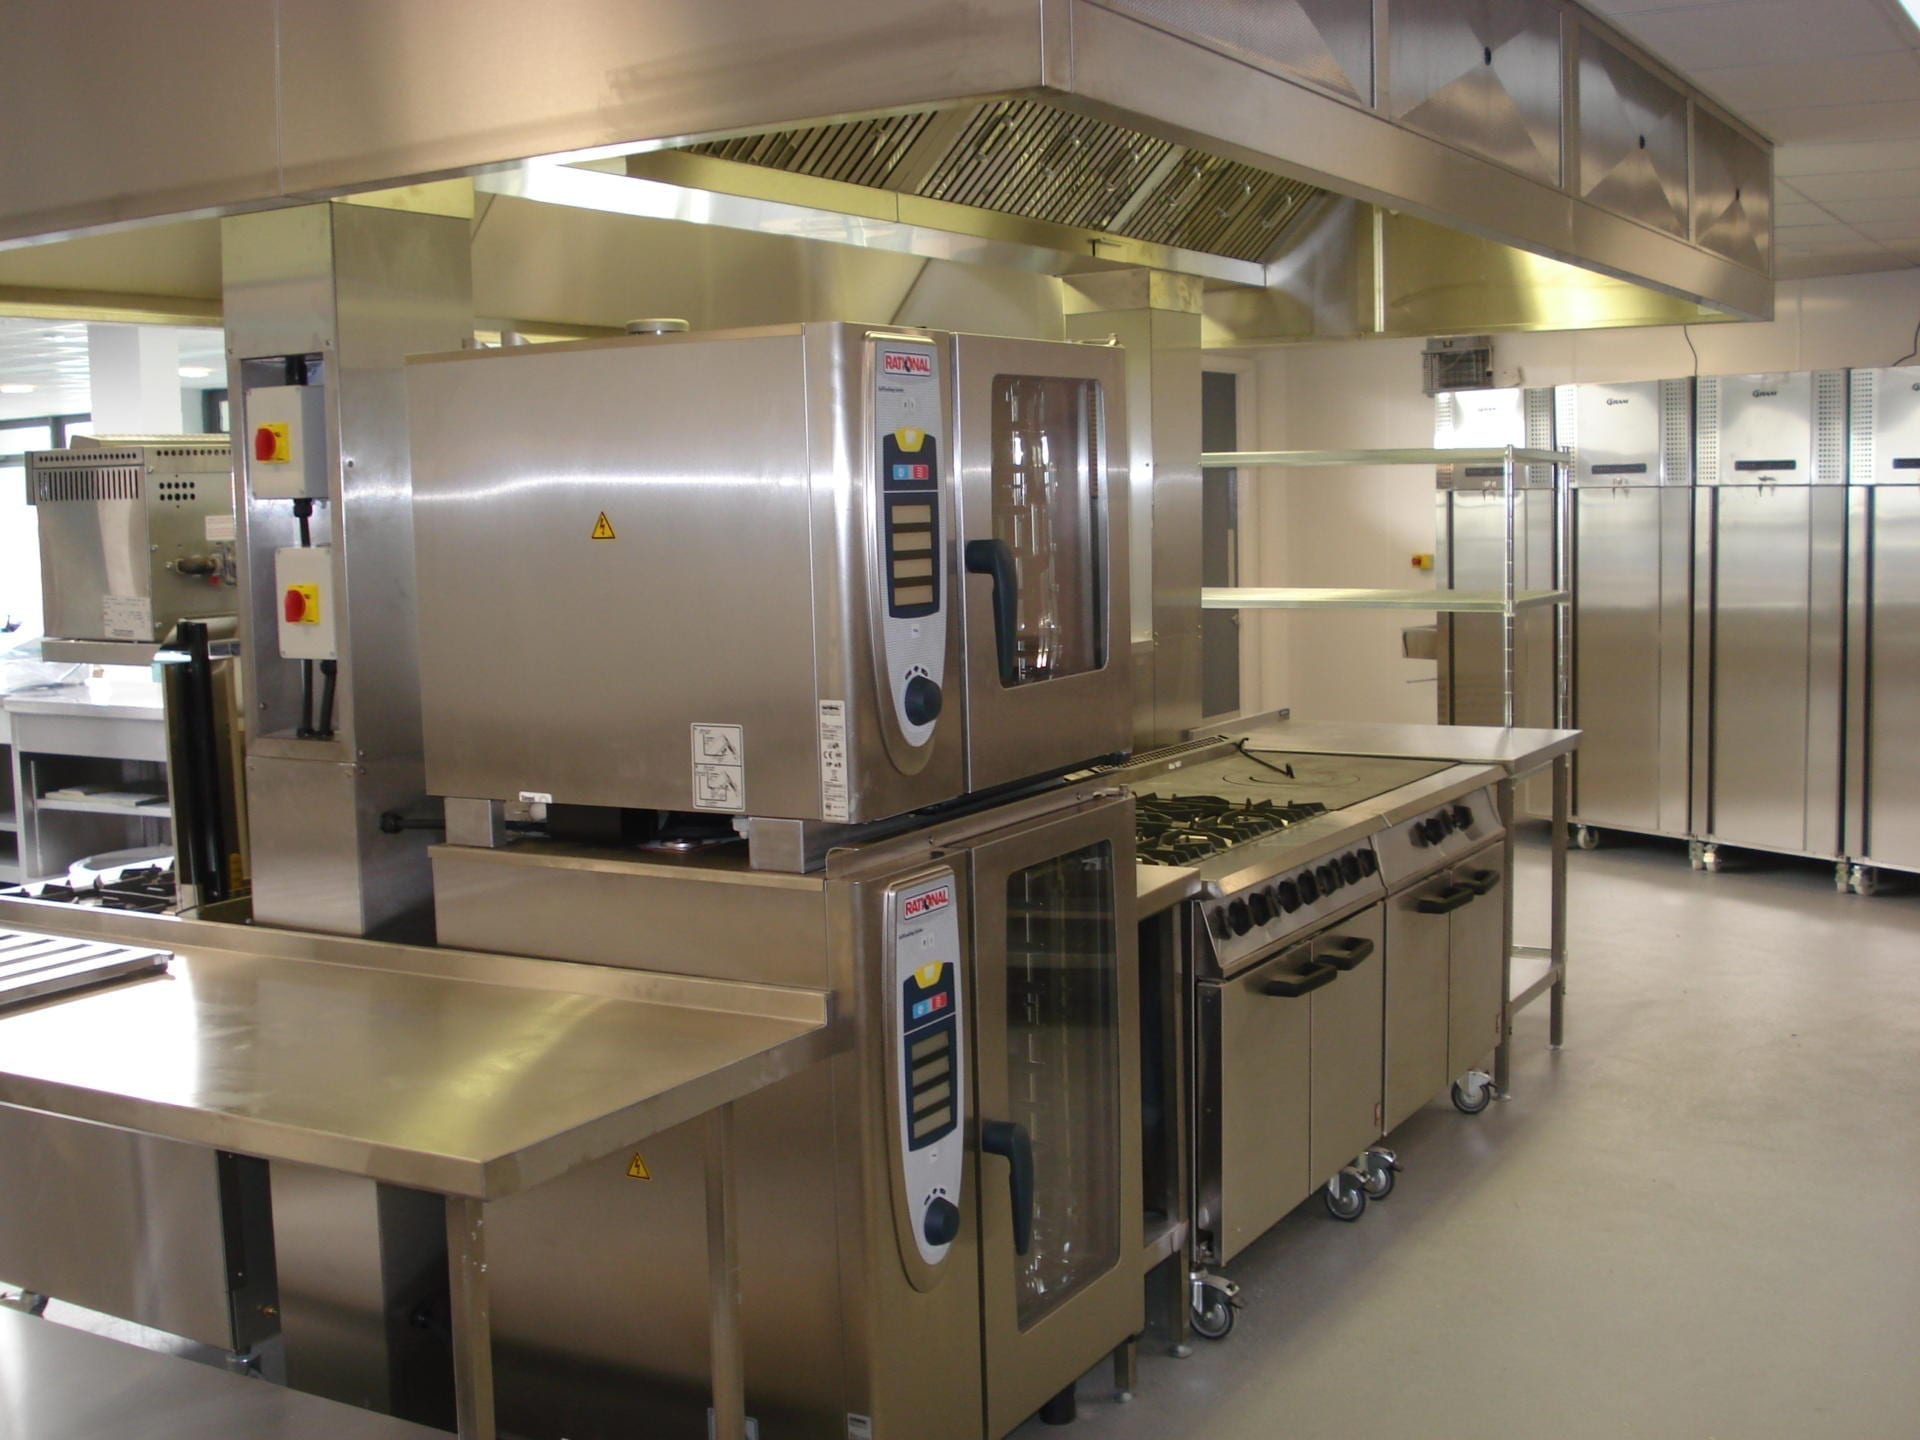 Gloucester-College-Gloucester-Servery-Stainless-Steel-fabrication-cooking-Foodtech-teaching-spacecatering_4